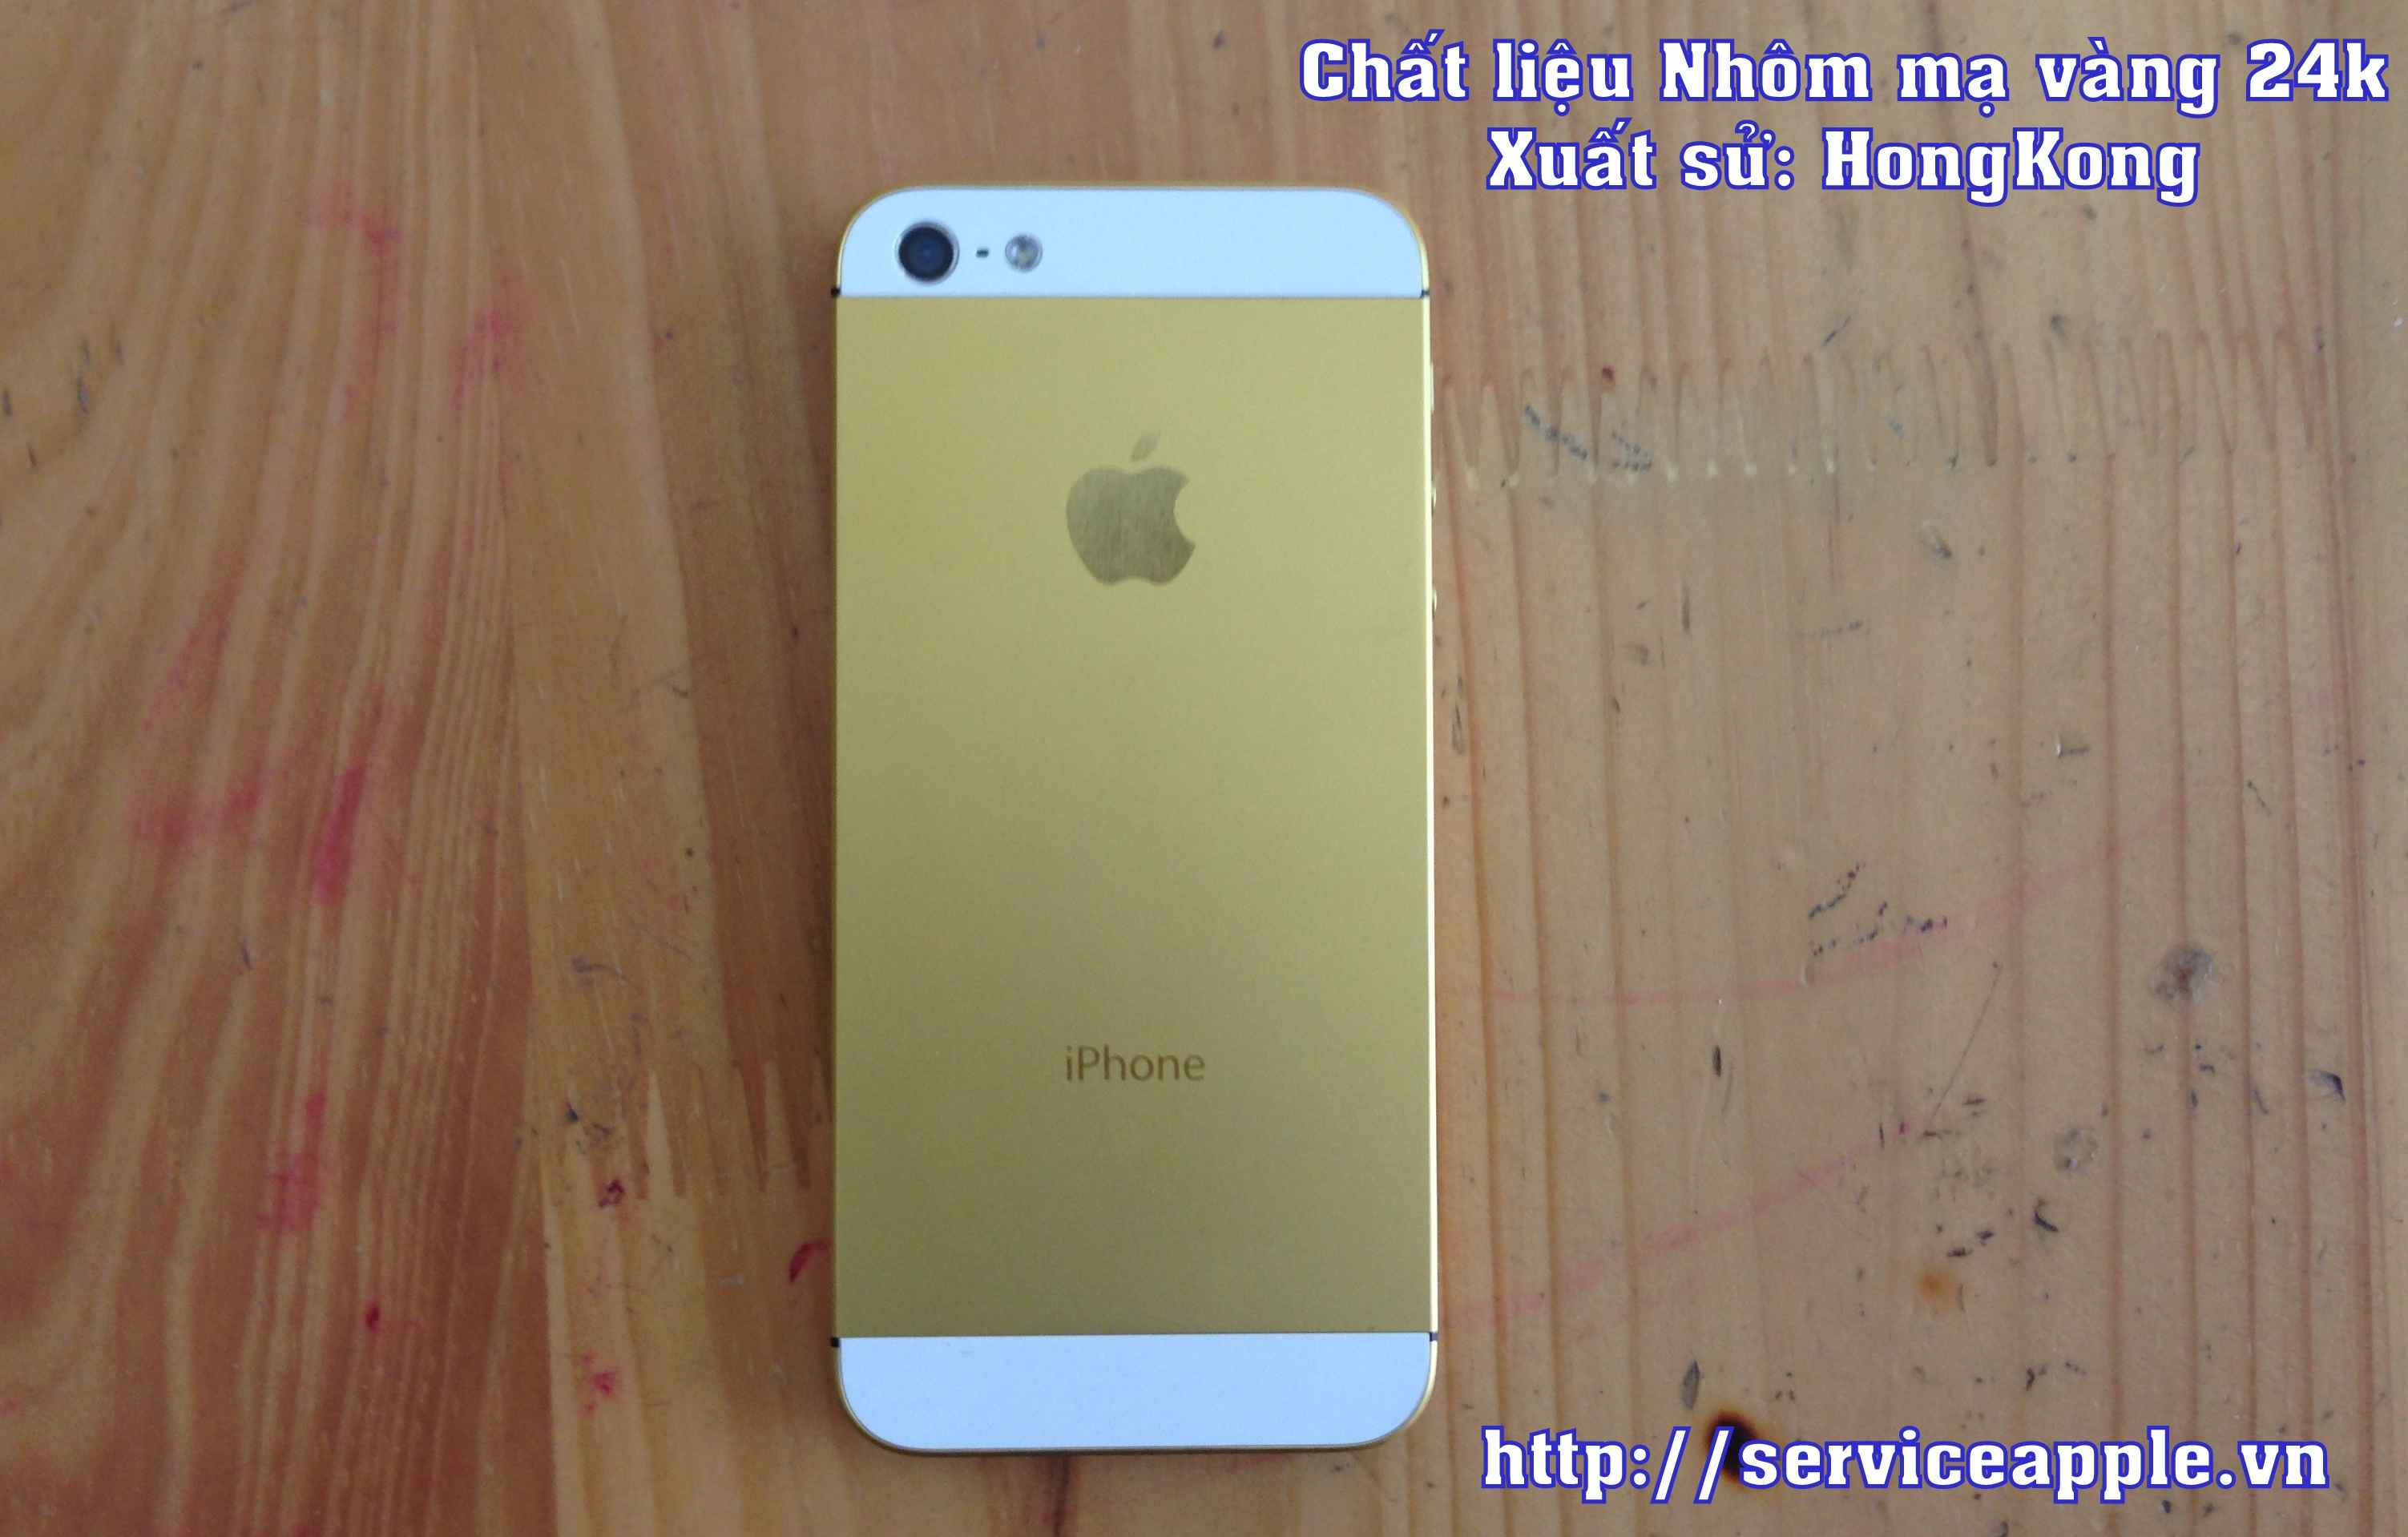 thay vo iphone 5 vang 24k.JPG